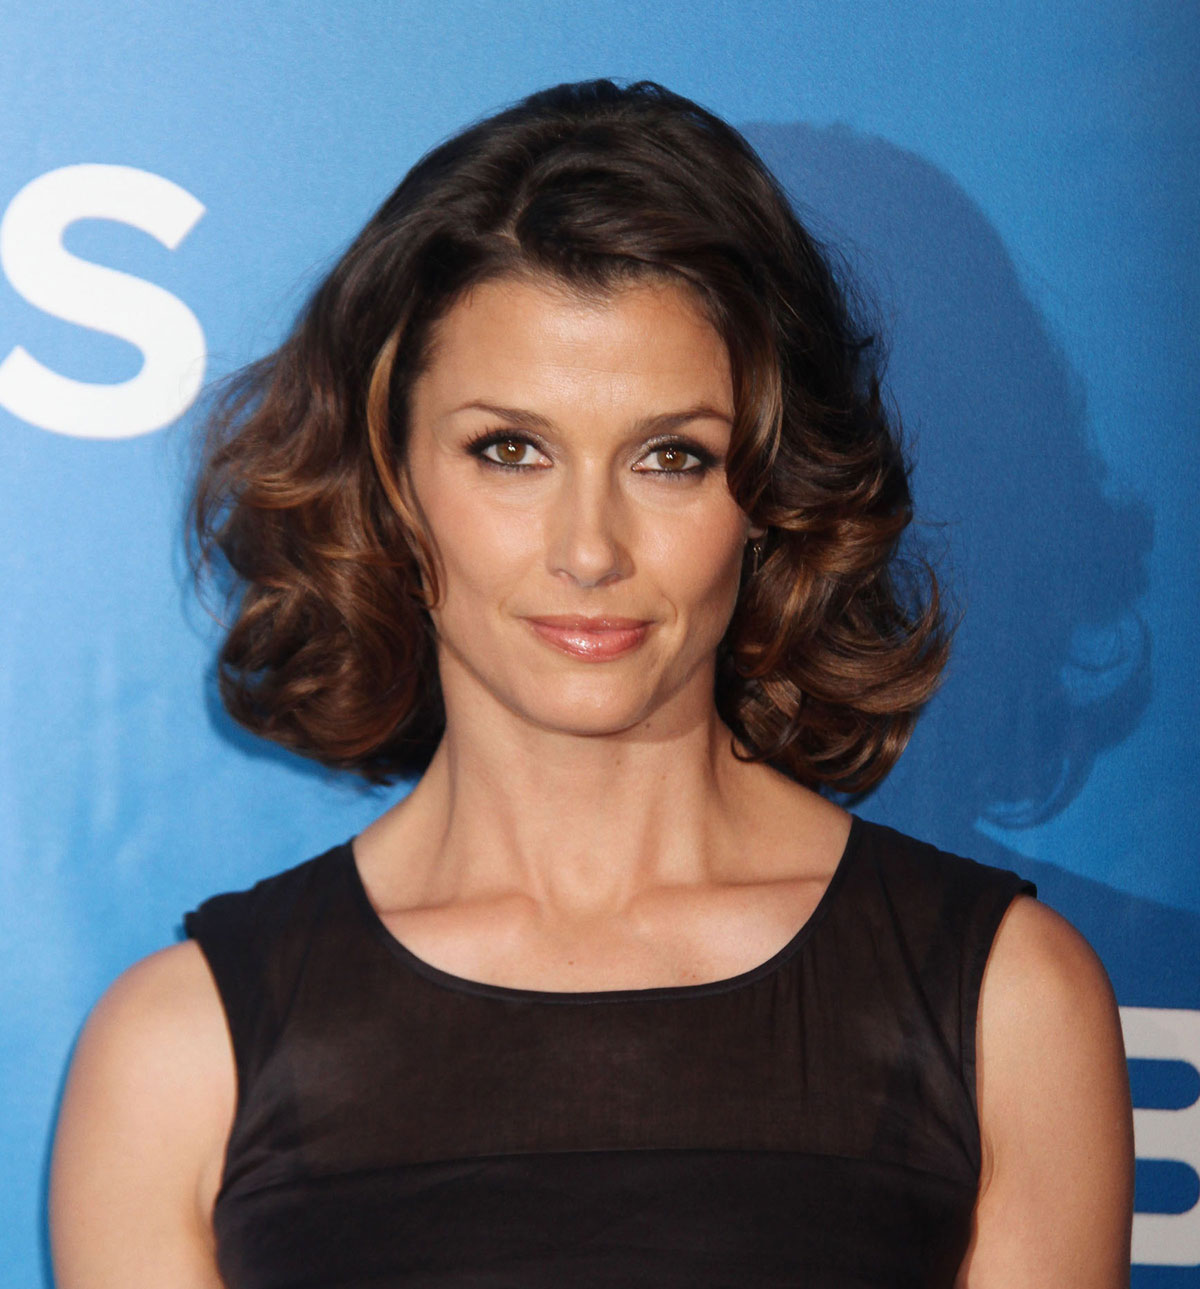 The 46-year old daughter of father Edward Bradley Moynahan and mother Mary Bridget Moynahan, 177 cm tall Bridget Moynahan in 2018 photo